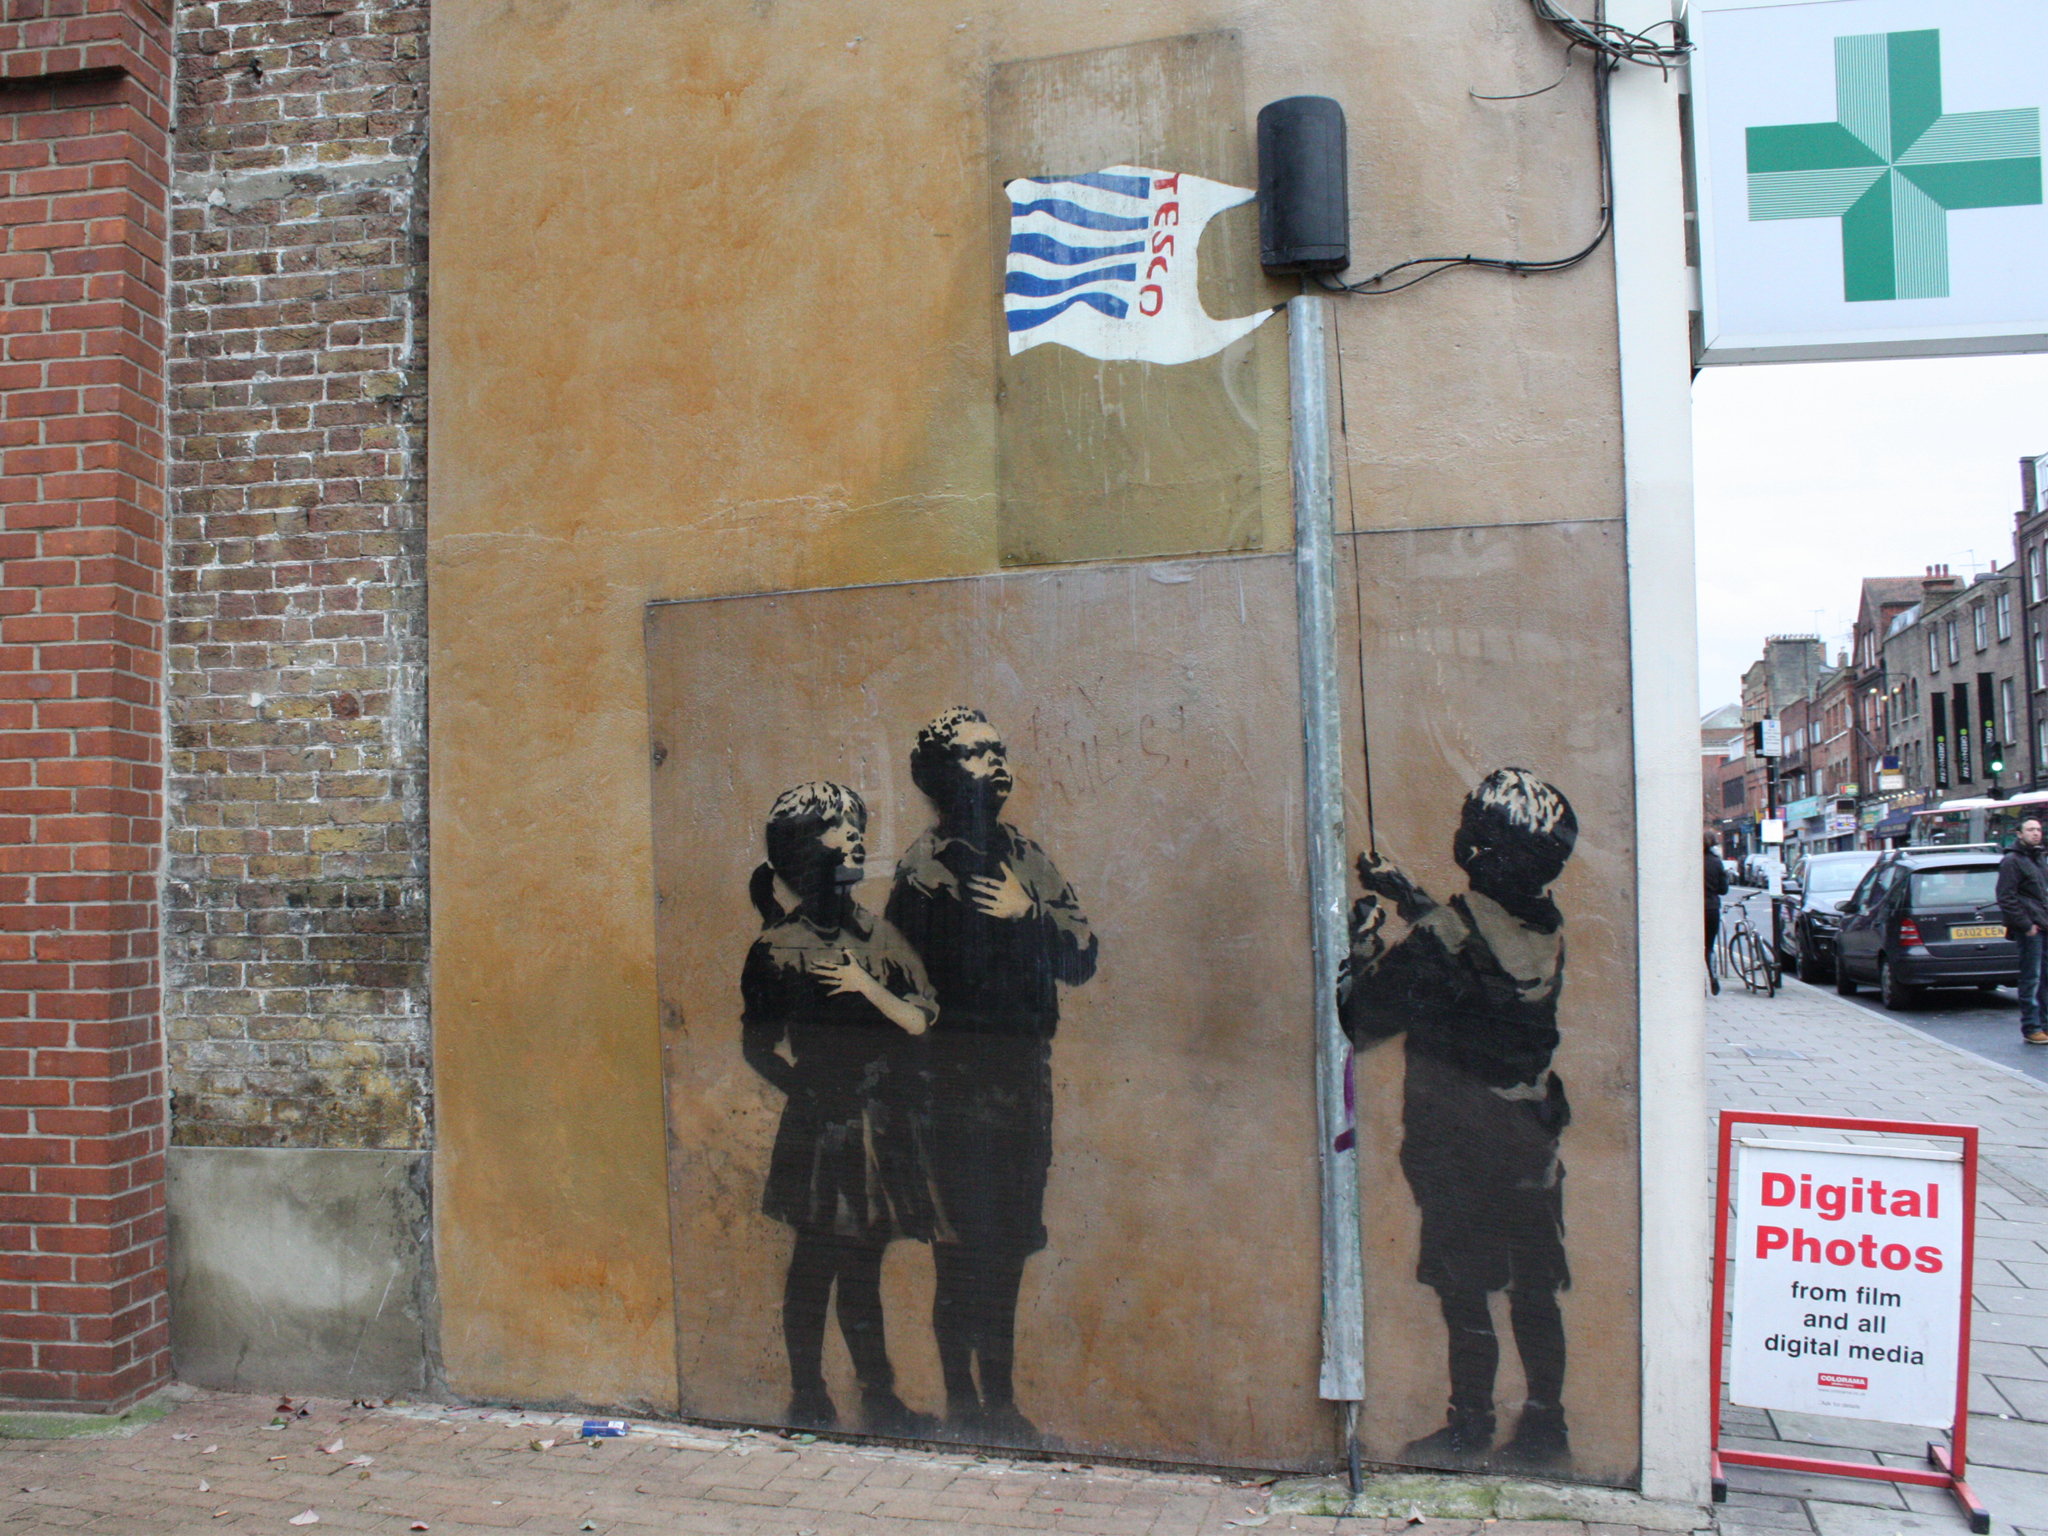 Who is banksy everything you know about banksy in london the kids hoisting a tesco bag flag in canonbury hell frequently rework famous images too like his addition of ronald macdonald to photojournalist gumiabroncs Image collections